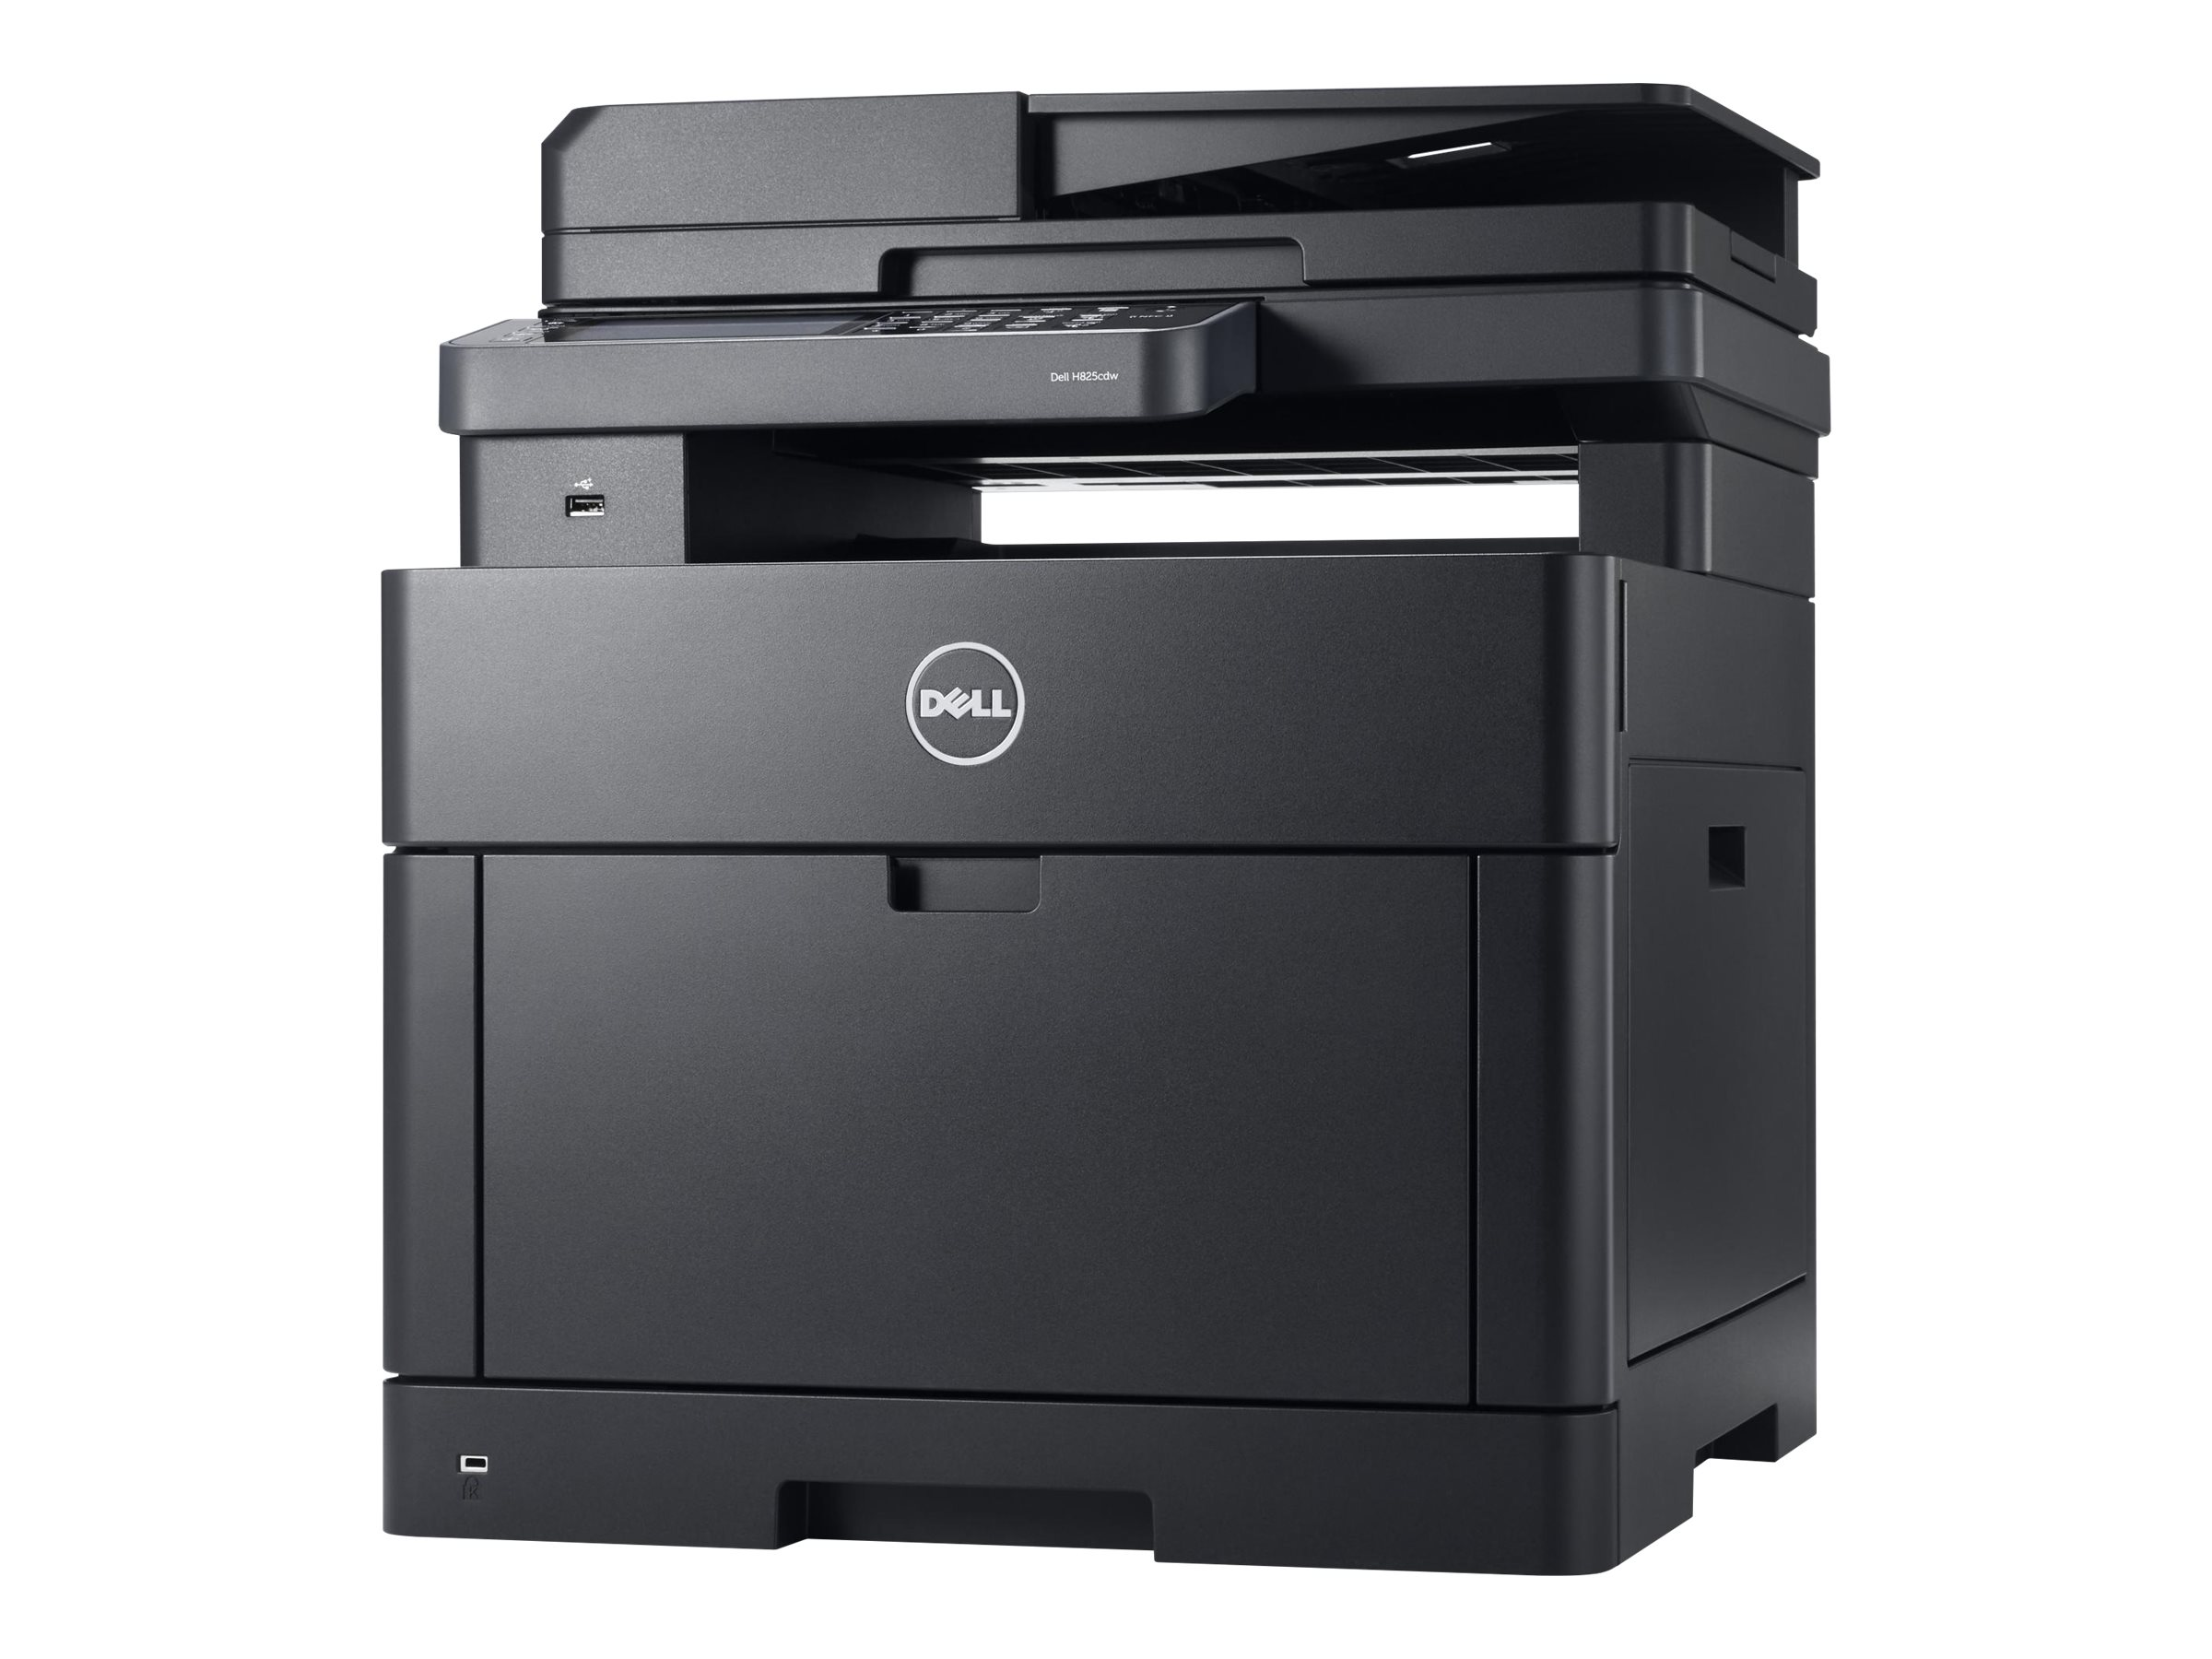 Dell Color Cloud Multifinction Printer - H825cdw